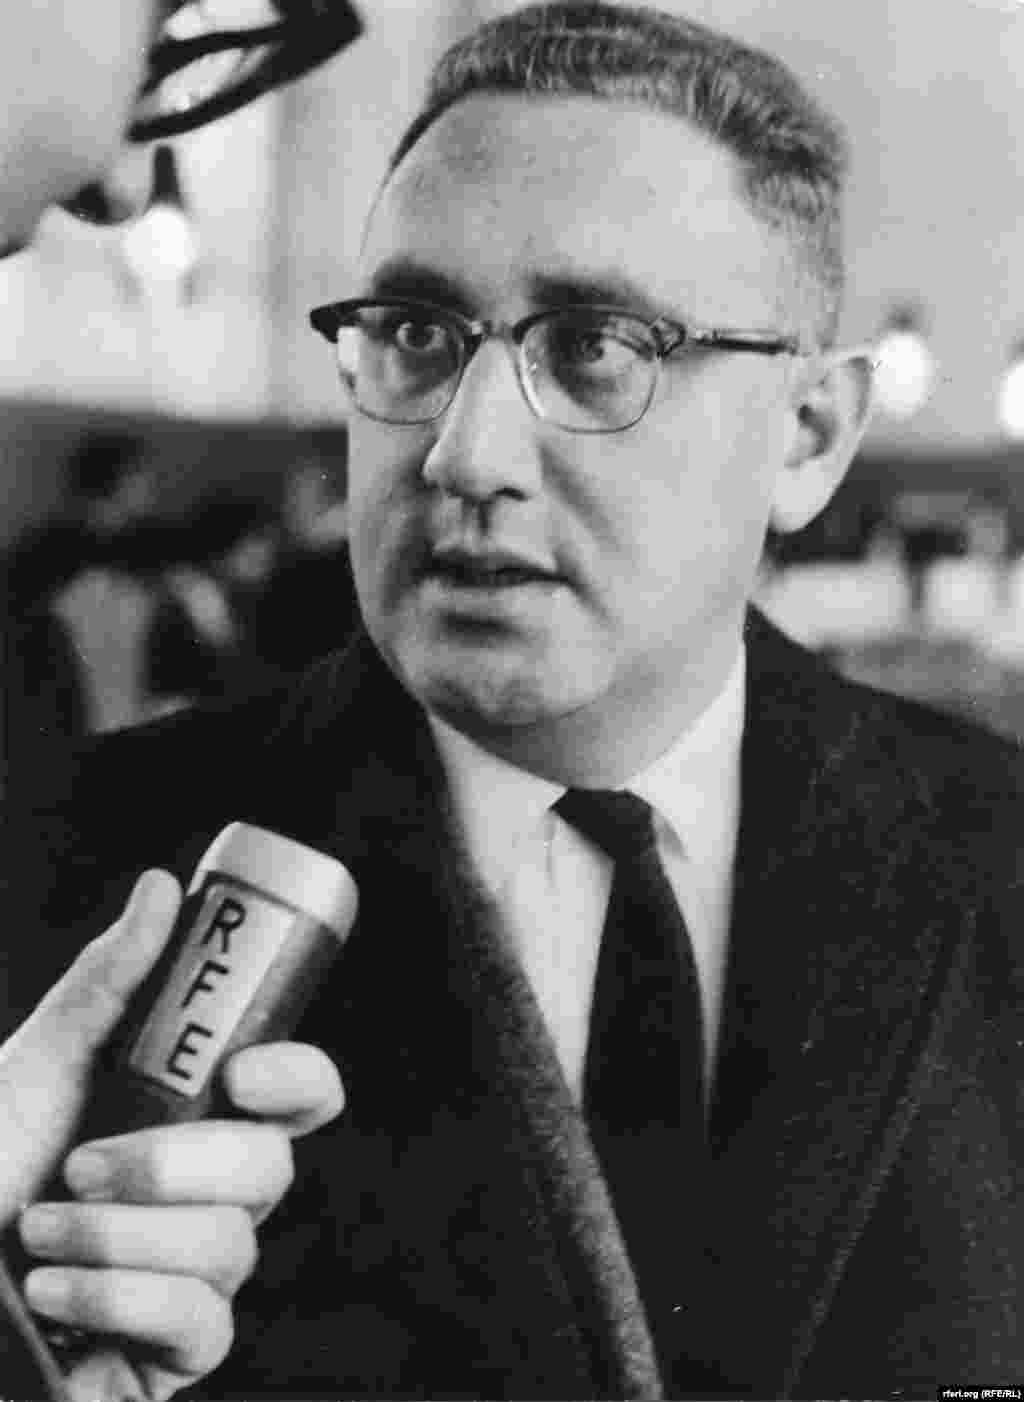 Henry Kissinger is being interviewed by Radio Free Europe in the early 1960s about the political situation in Europe. - Henry Kissinger is being interviewed by Radio Free Europe in the early 1960s about the political tensions raging in Europe.